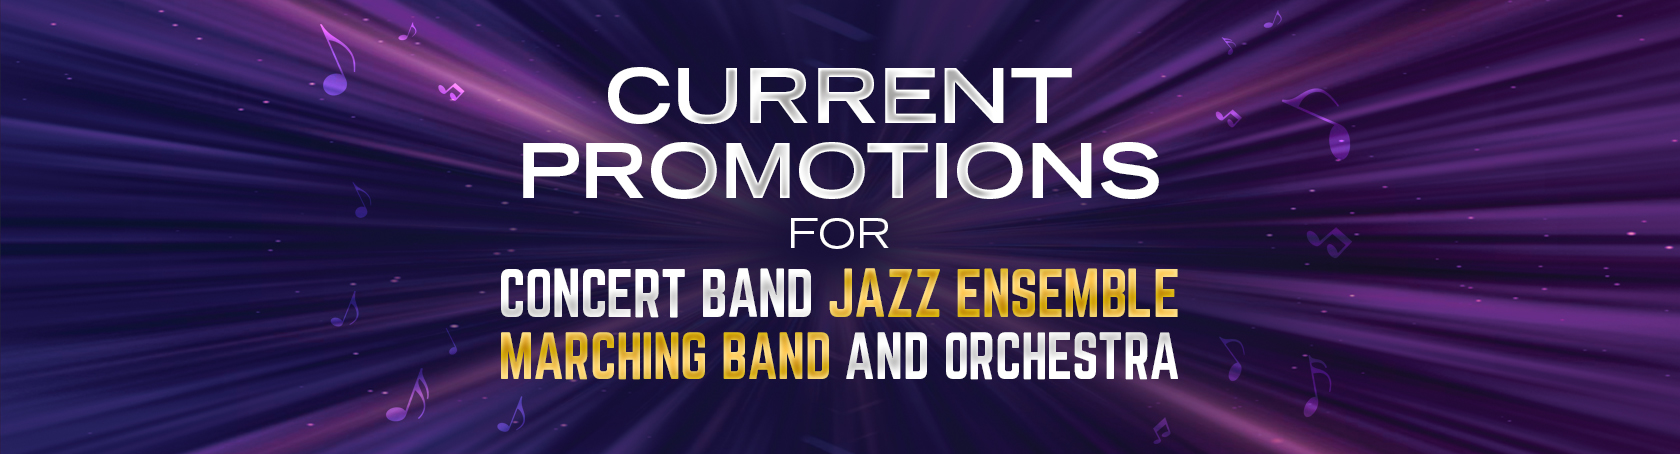 Current Promotions - New releases for Concert Band, Jazz Ensemble, Marching Band, and Orchestra